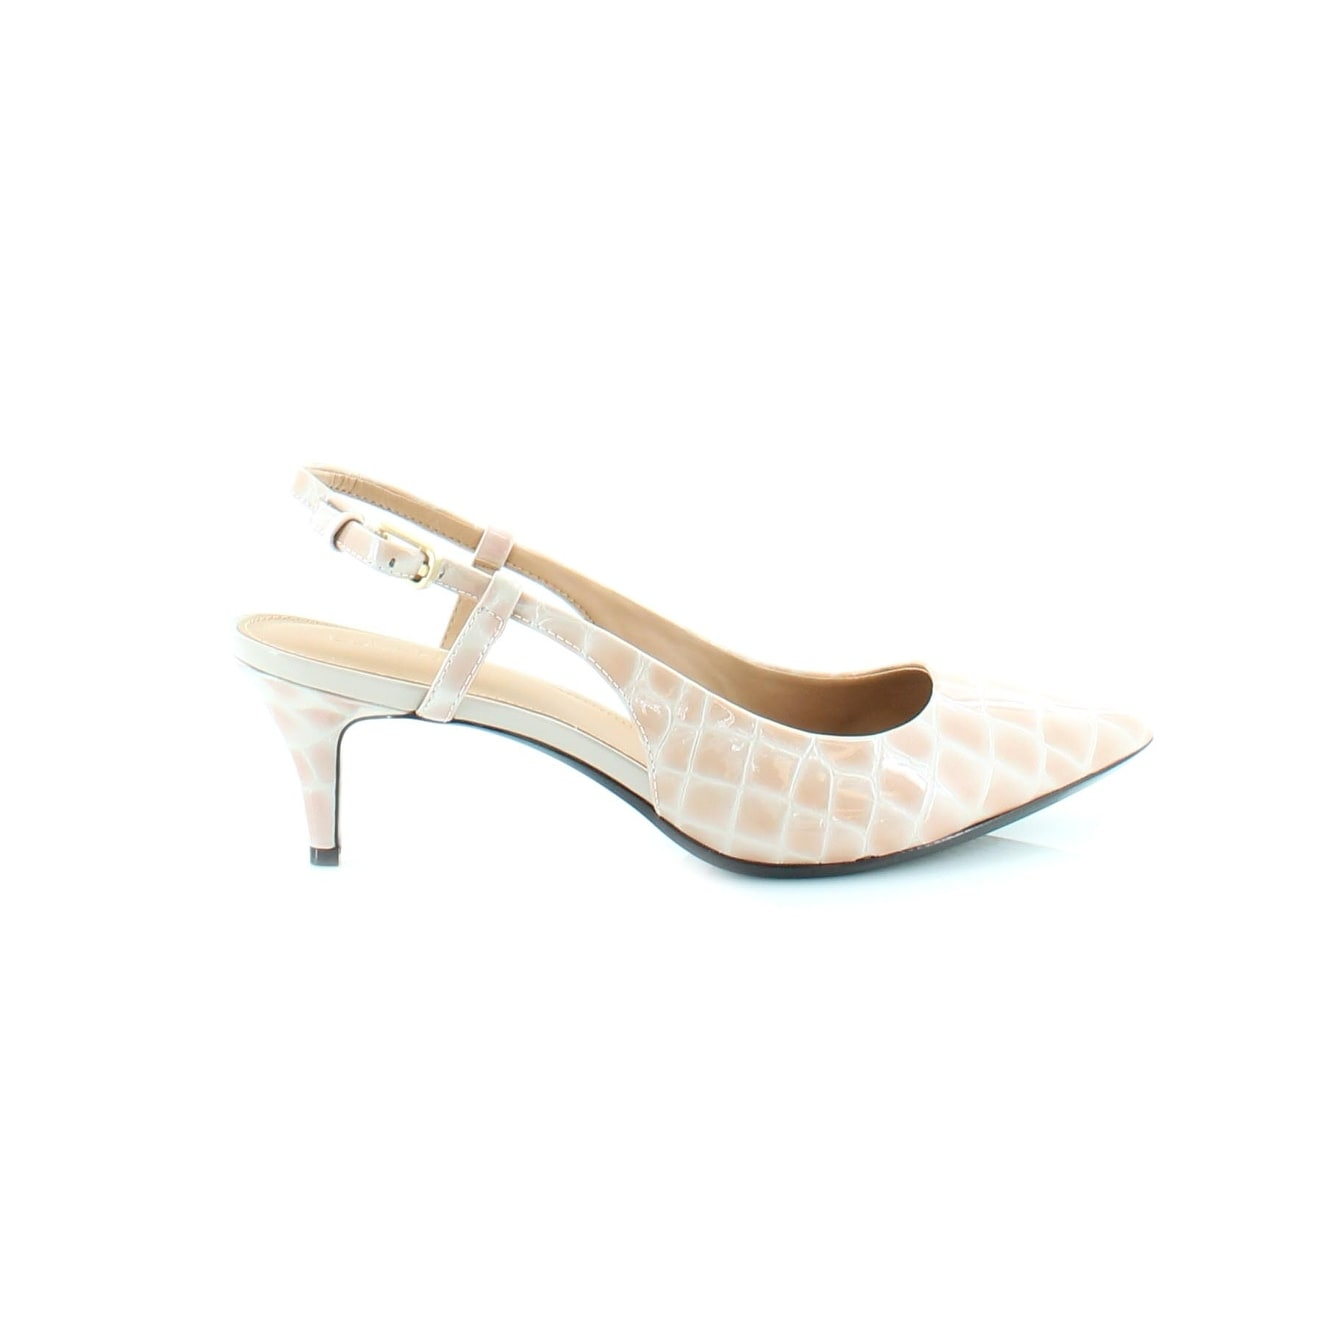 01eef613cf5 Shop Calvin Klein Patsy Women s Heels Clay - Free Shipping On Orders Over   45 - Overstock.com - 20704345